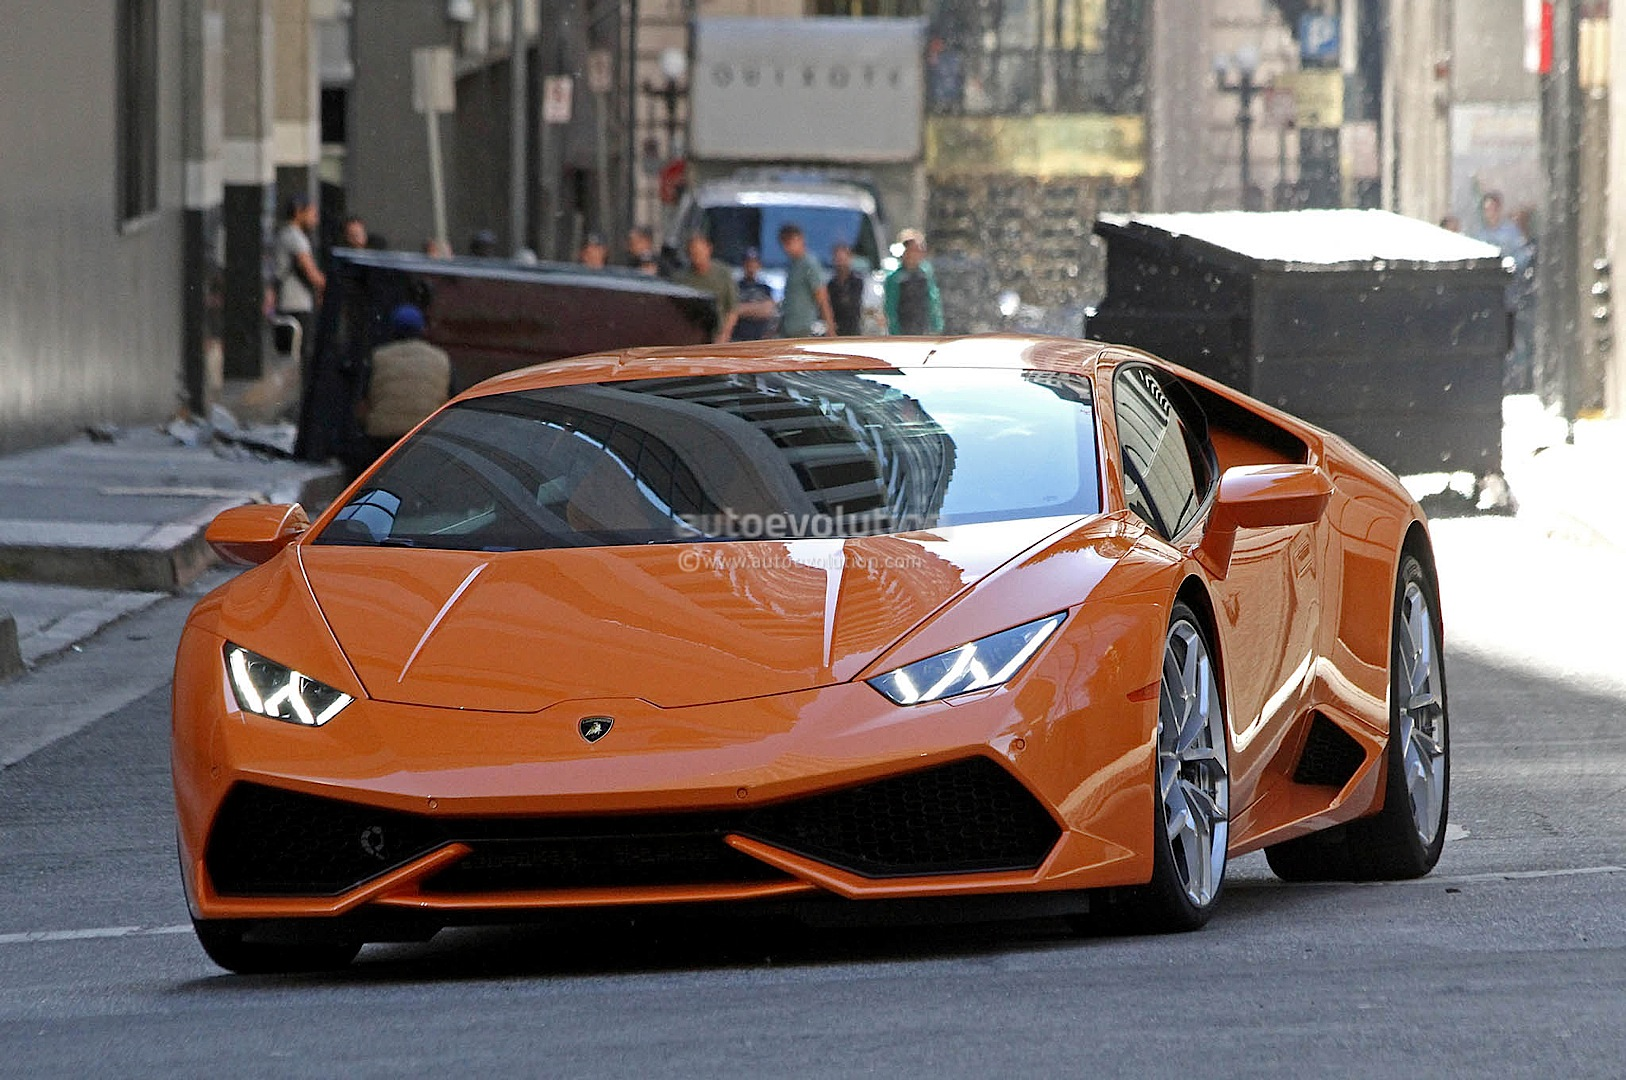 Spyshots Orange Lamborghini Huracan Street Racing In The